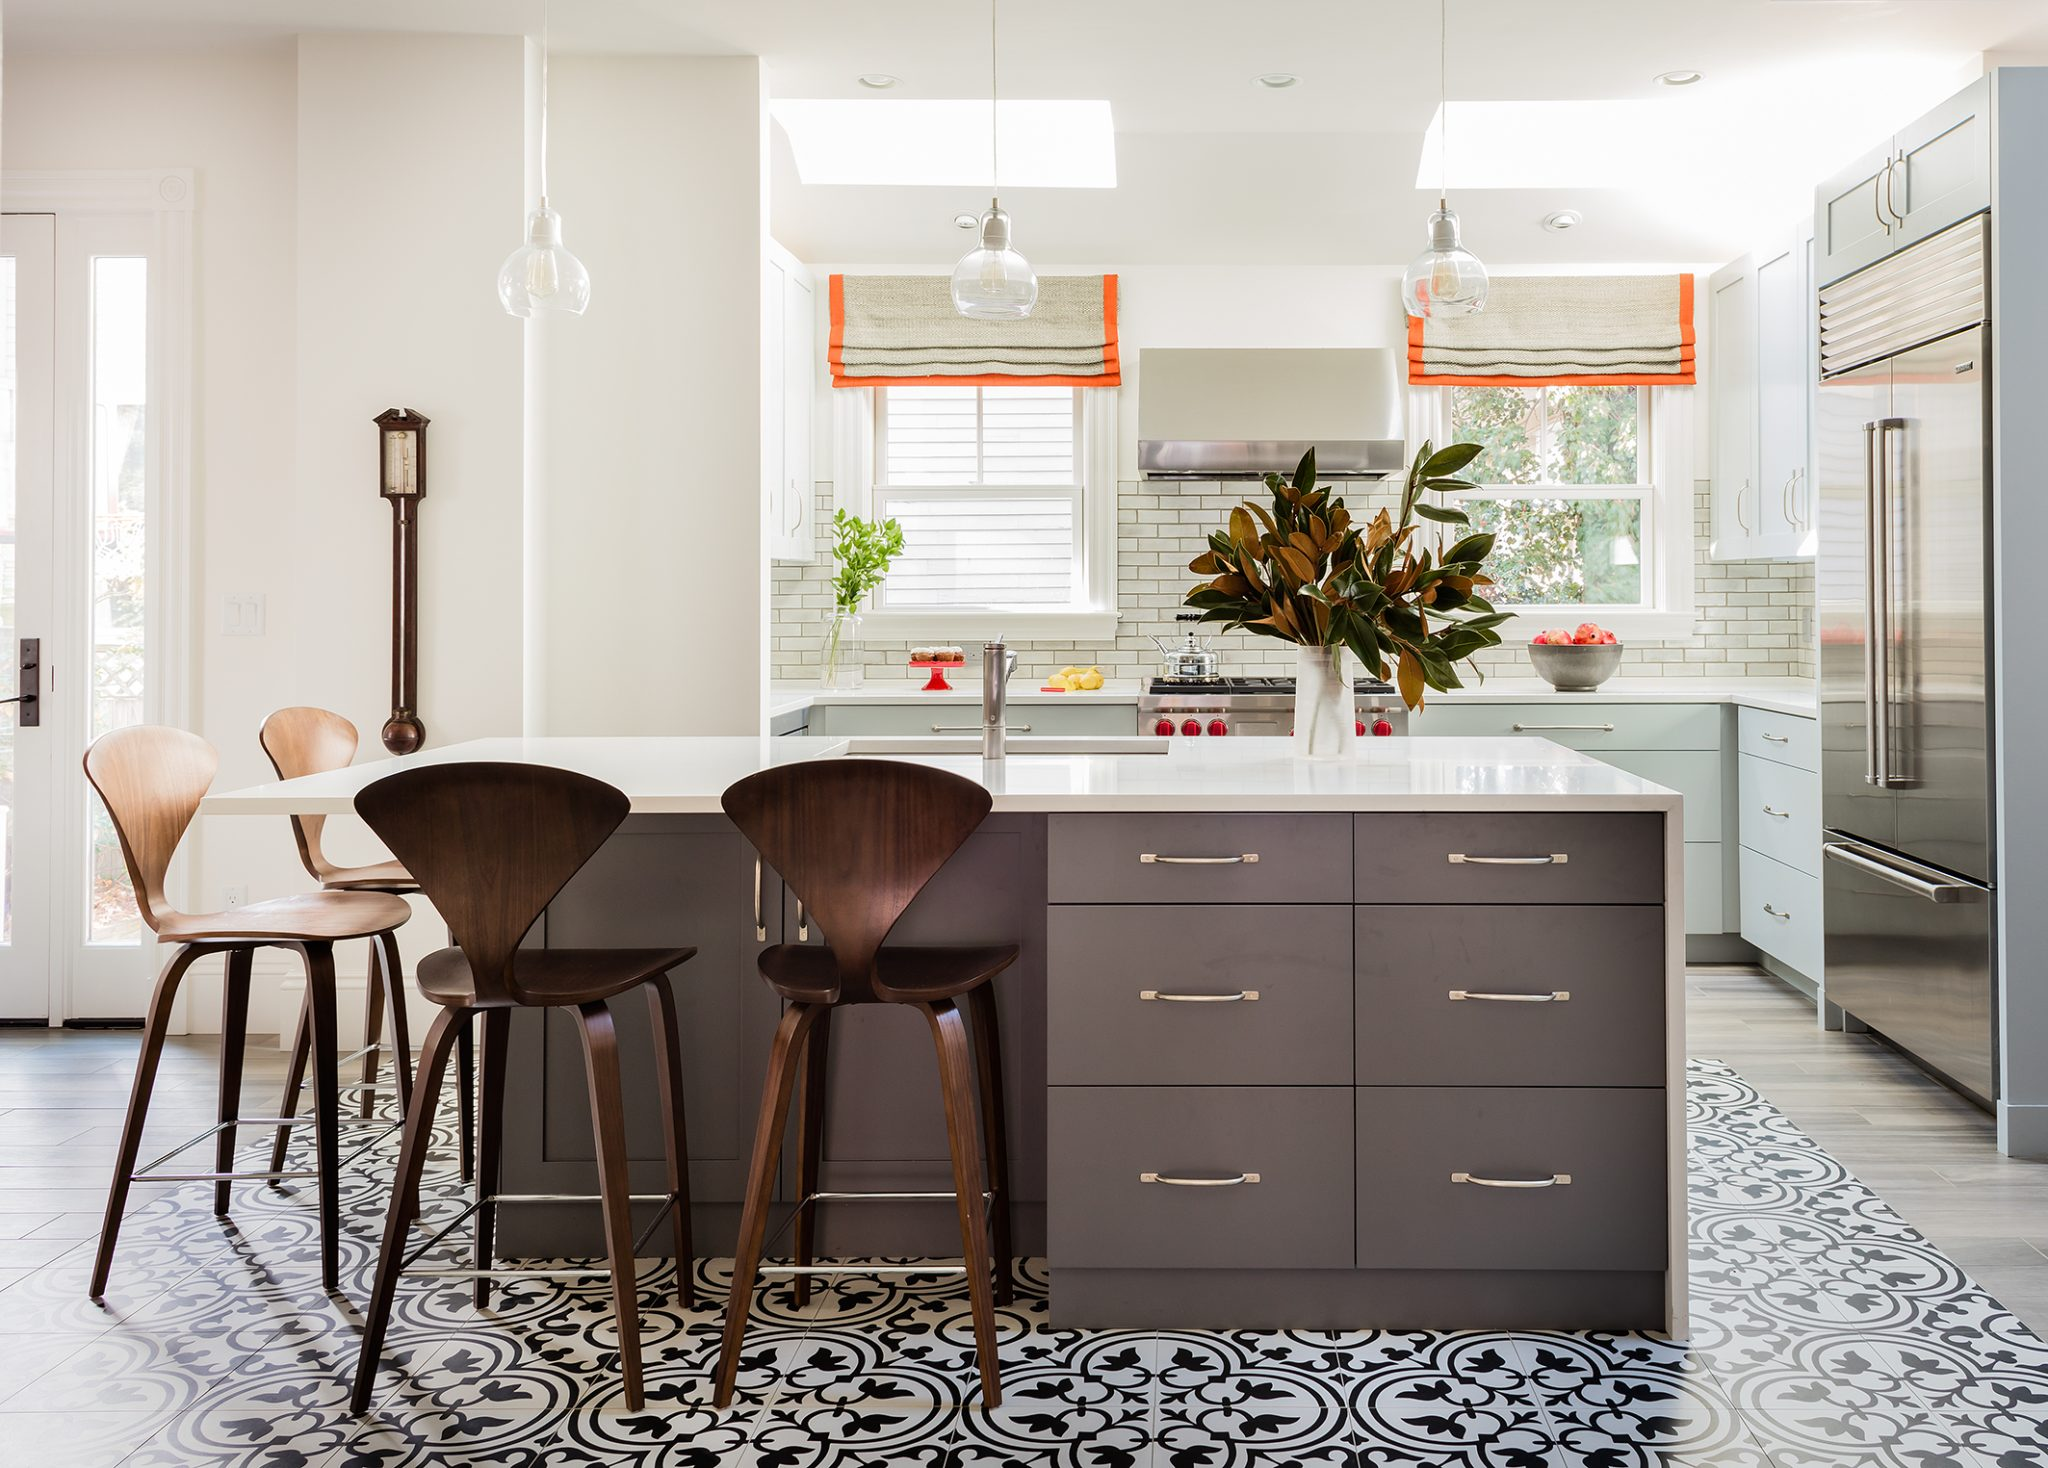 Cambridge Victorian by Elms Interior Design